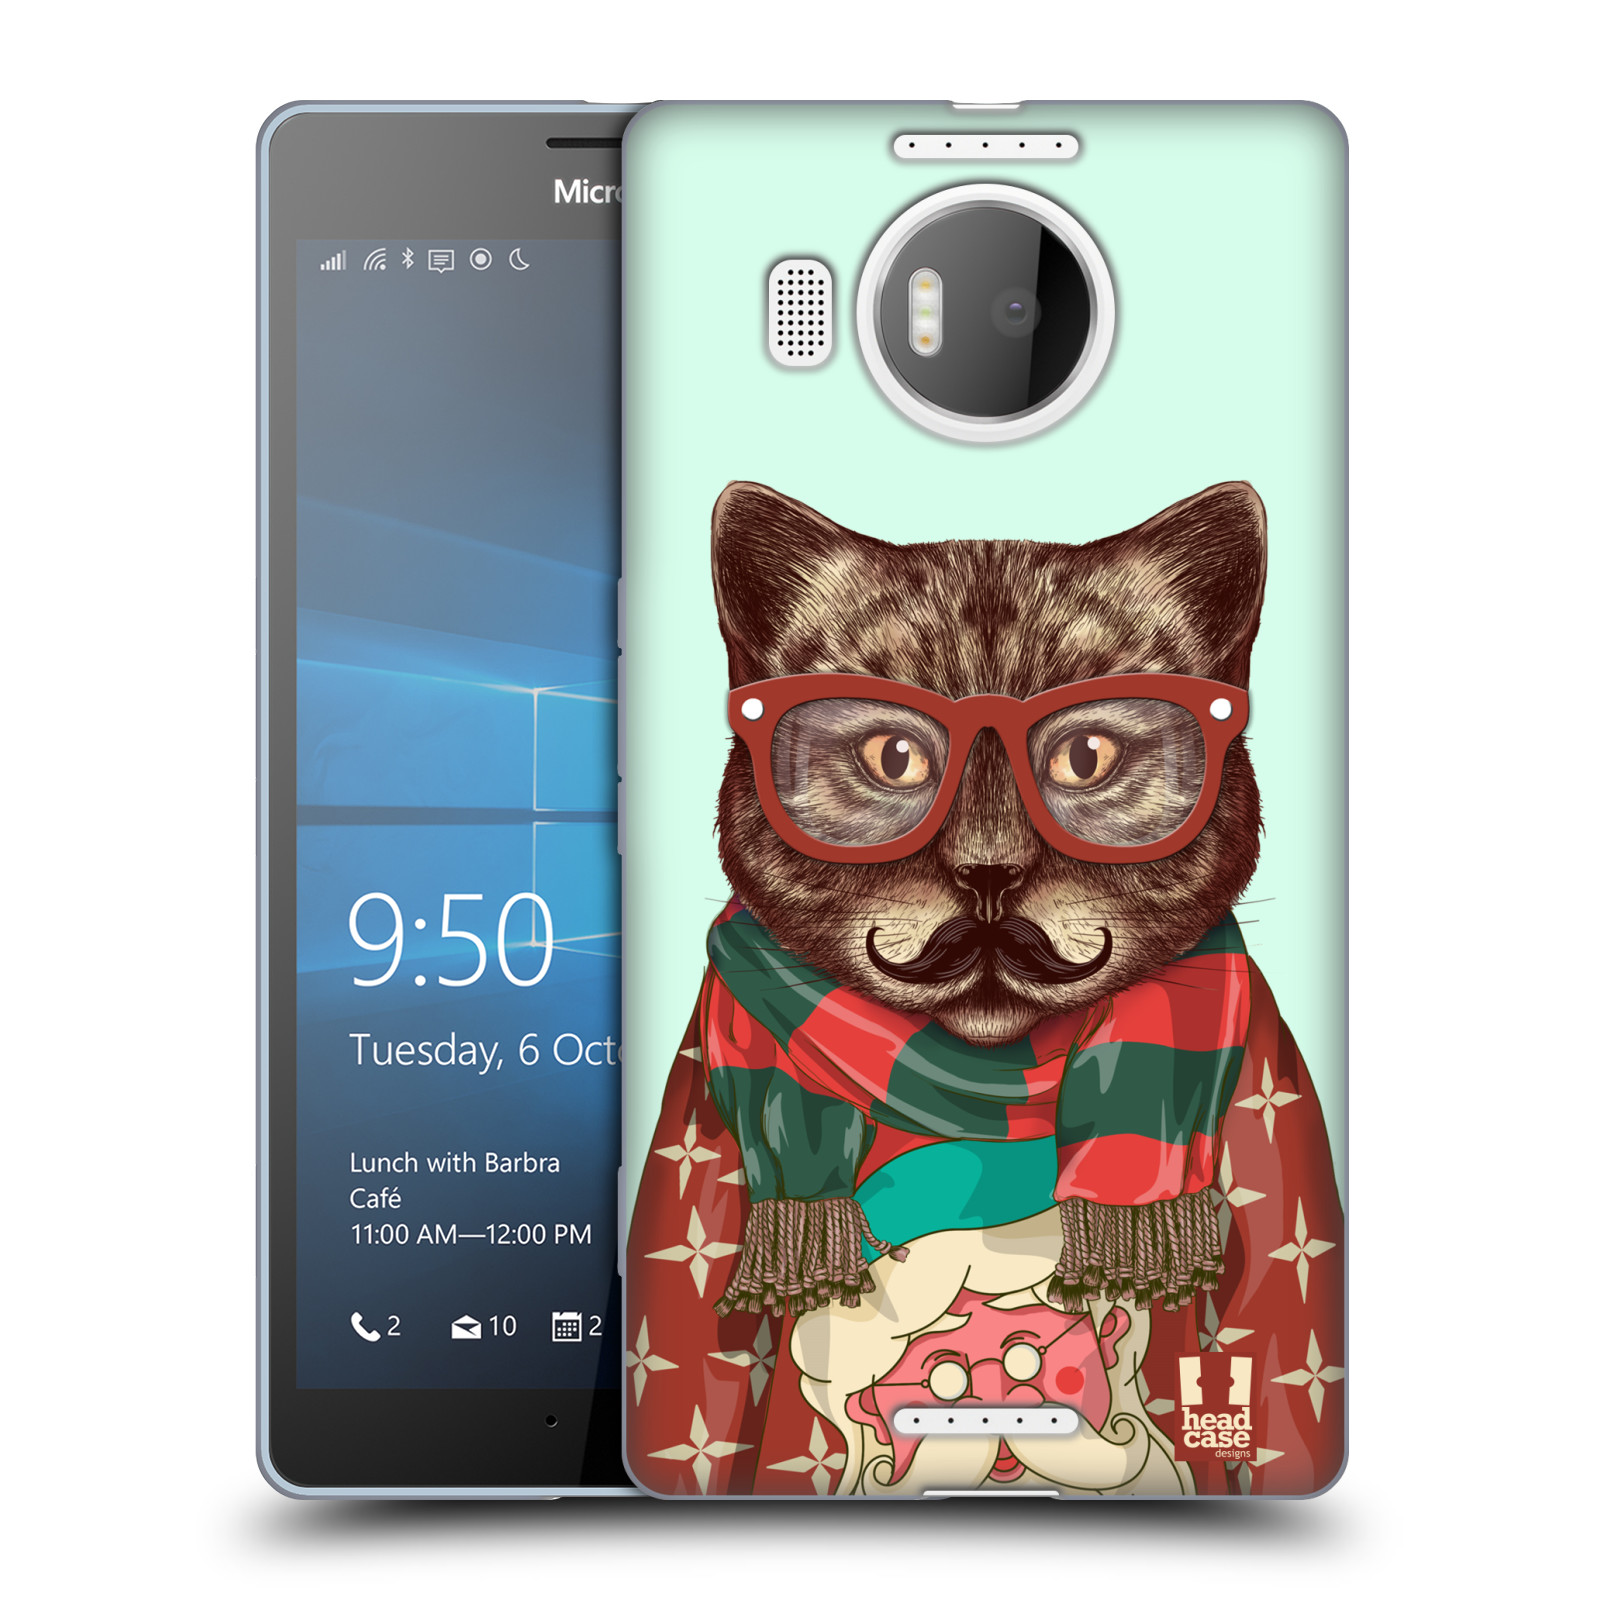 HEAD CASE DESIGNS HIPSTER ANIMALS IN SWEATERS SOFT GEL CASE FOR MICROSOFT PHONES